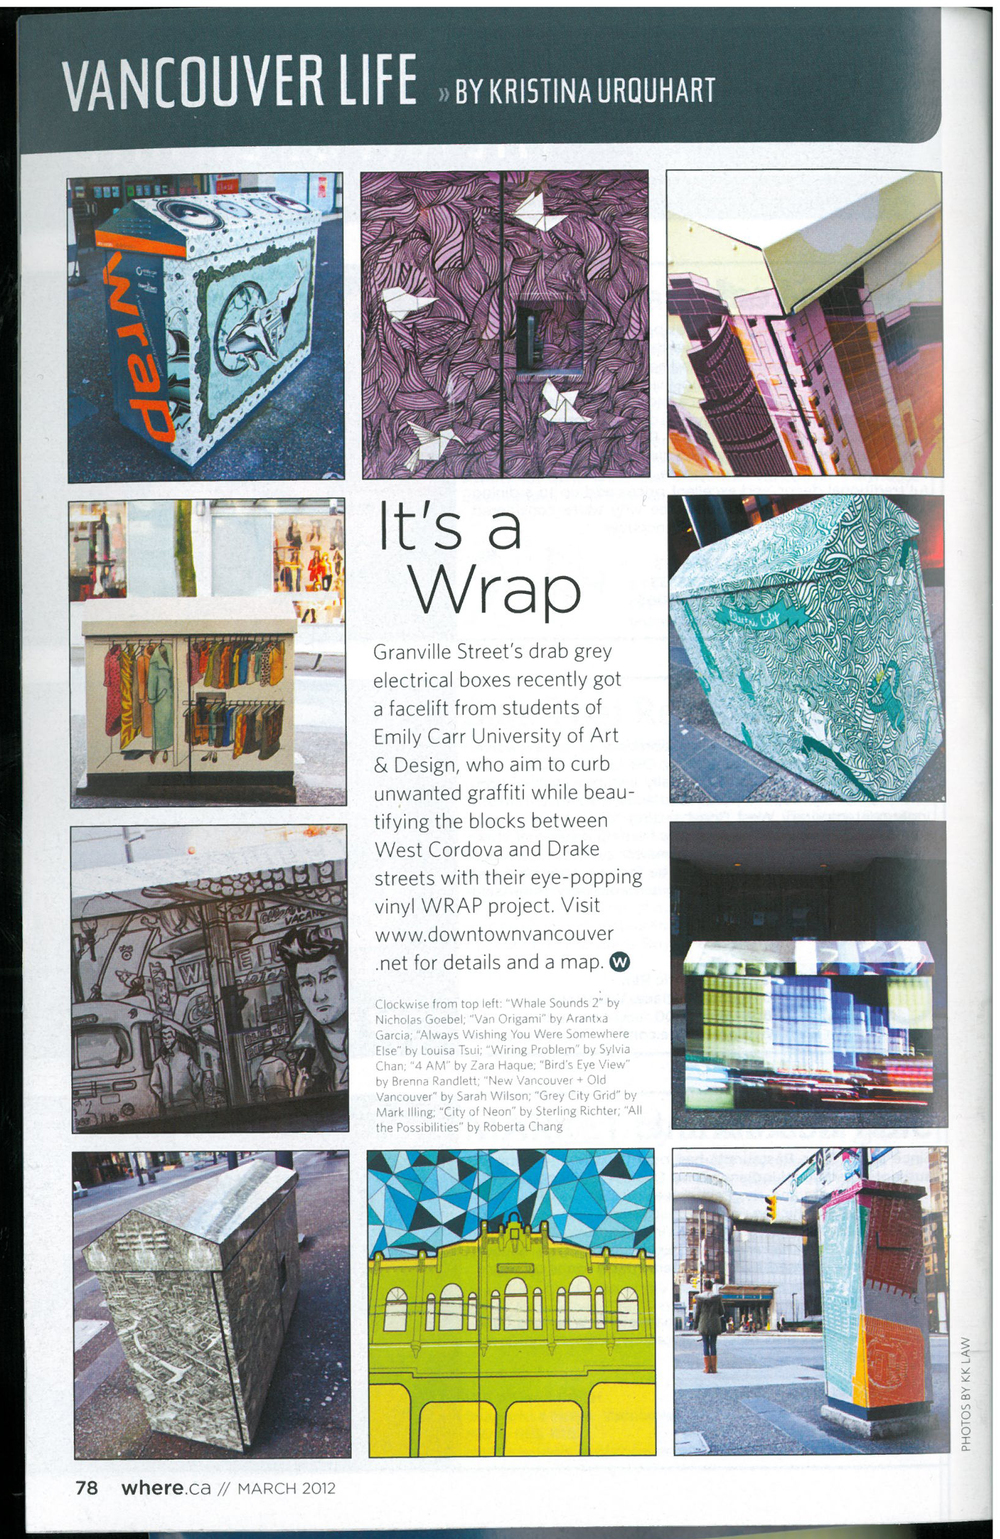 WRAP featured in an edition of where magazine - March 2012.